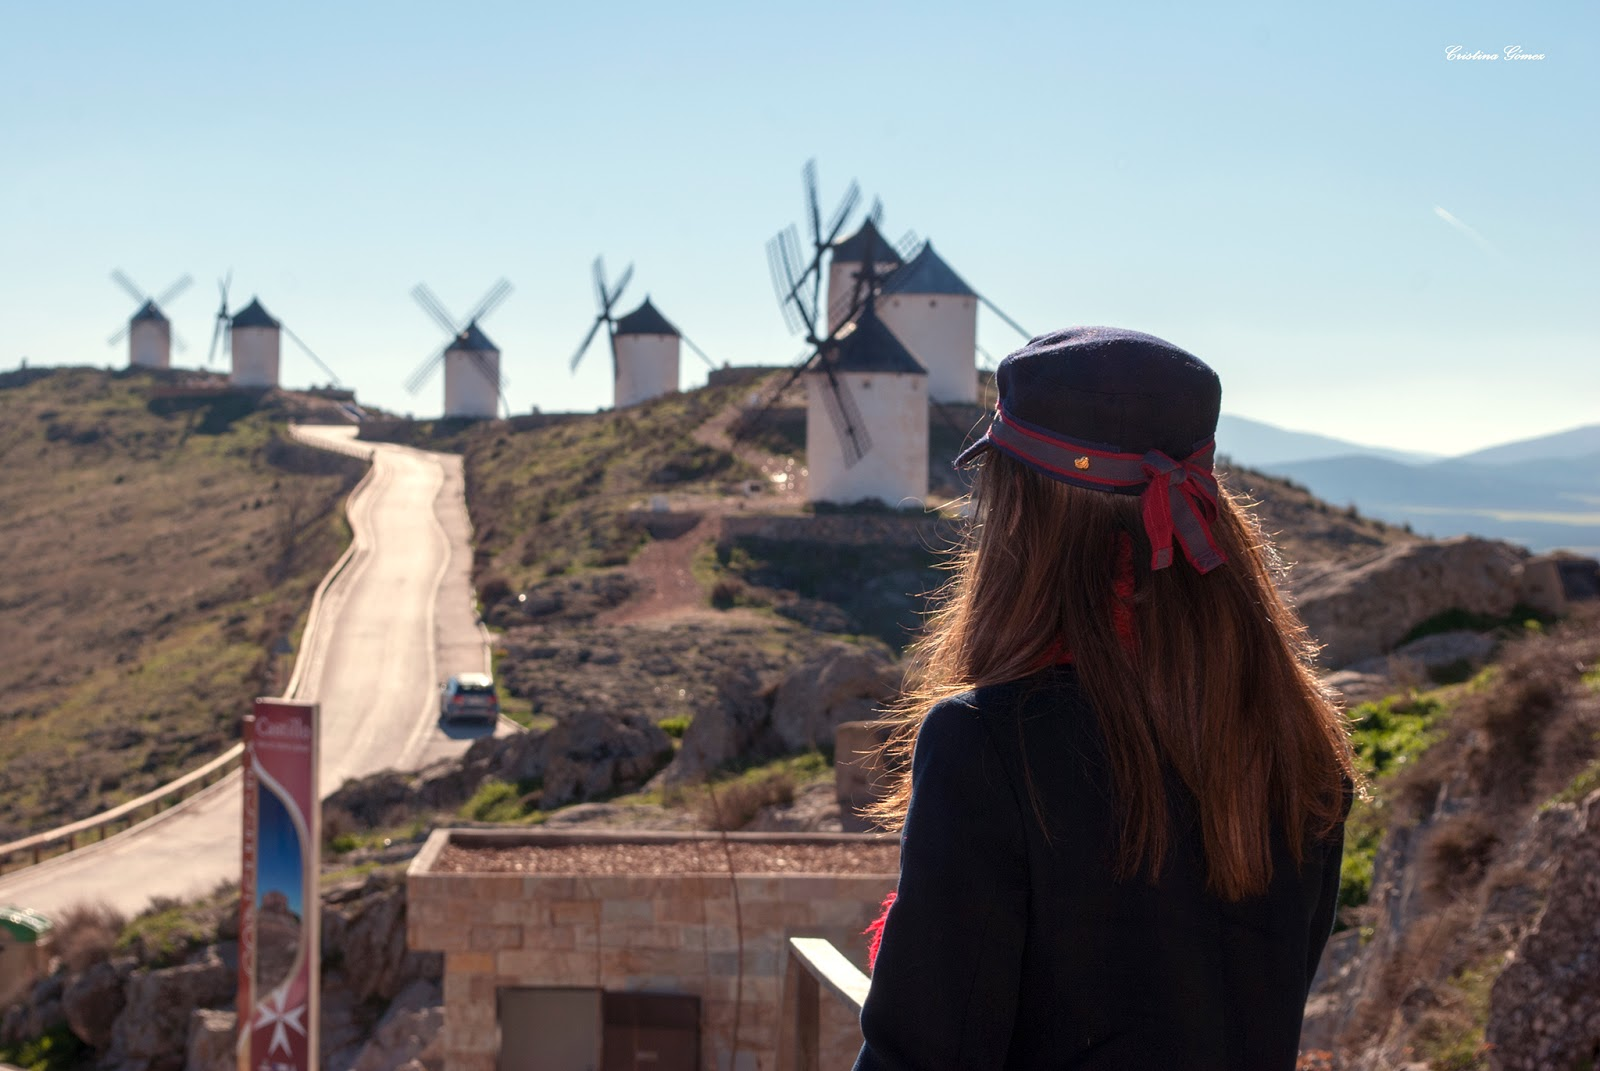 instagram worthy spots places spain instagrammable consuegra windmill toledo